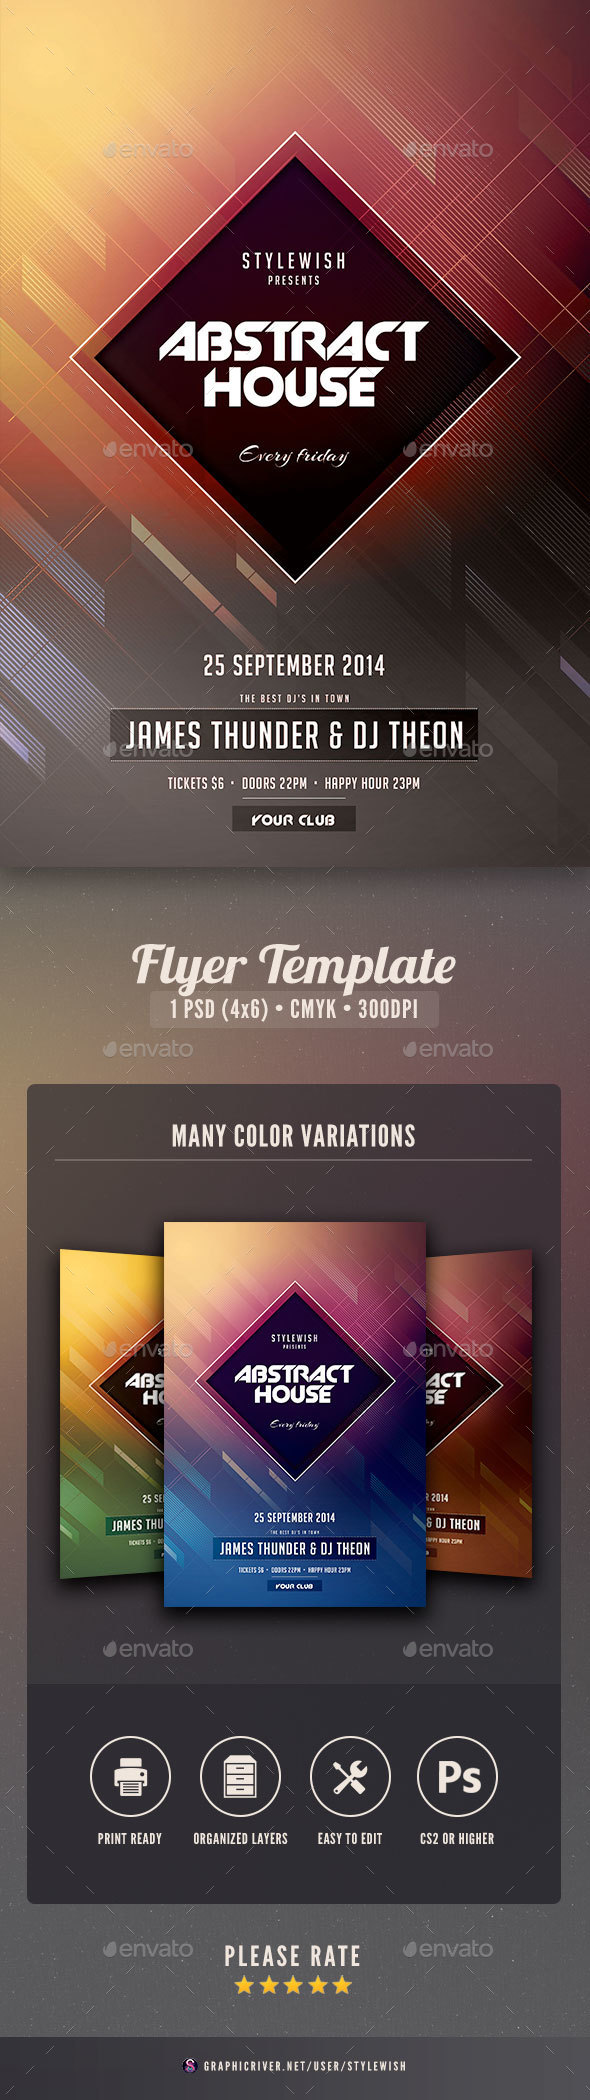 Abstract House Flyer - Clubs & Parties Events